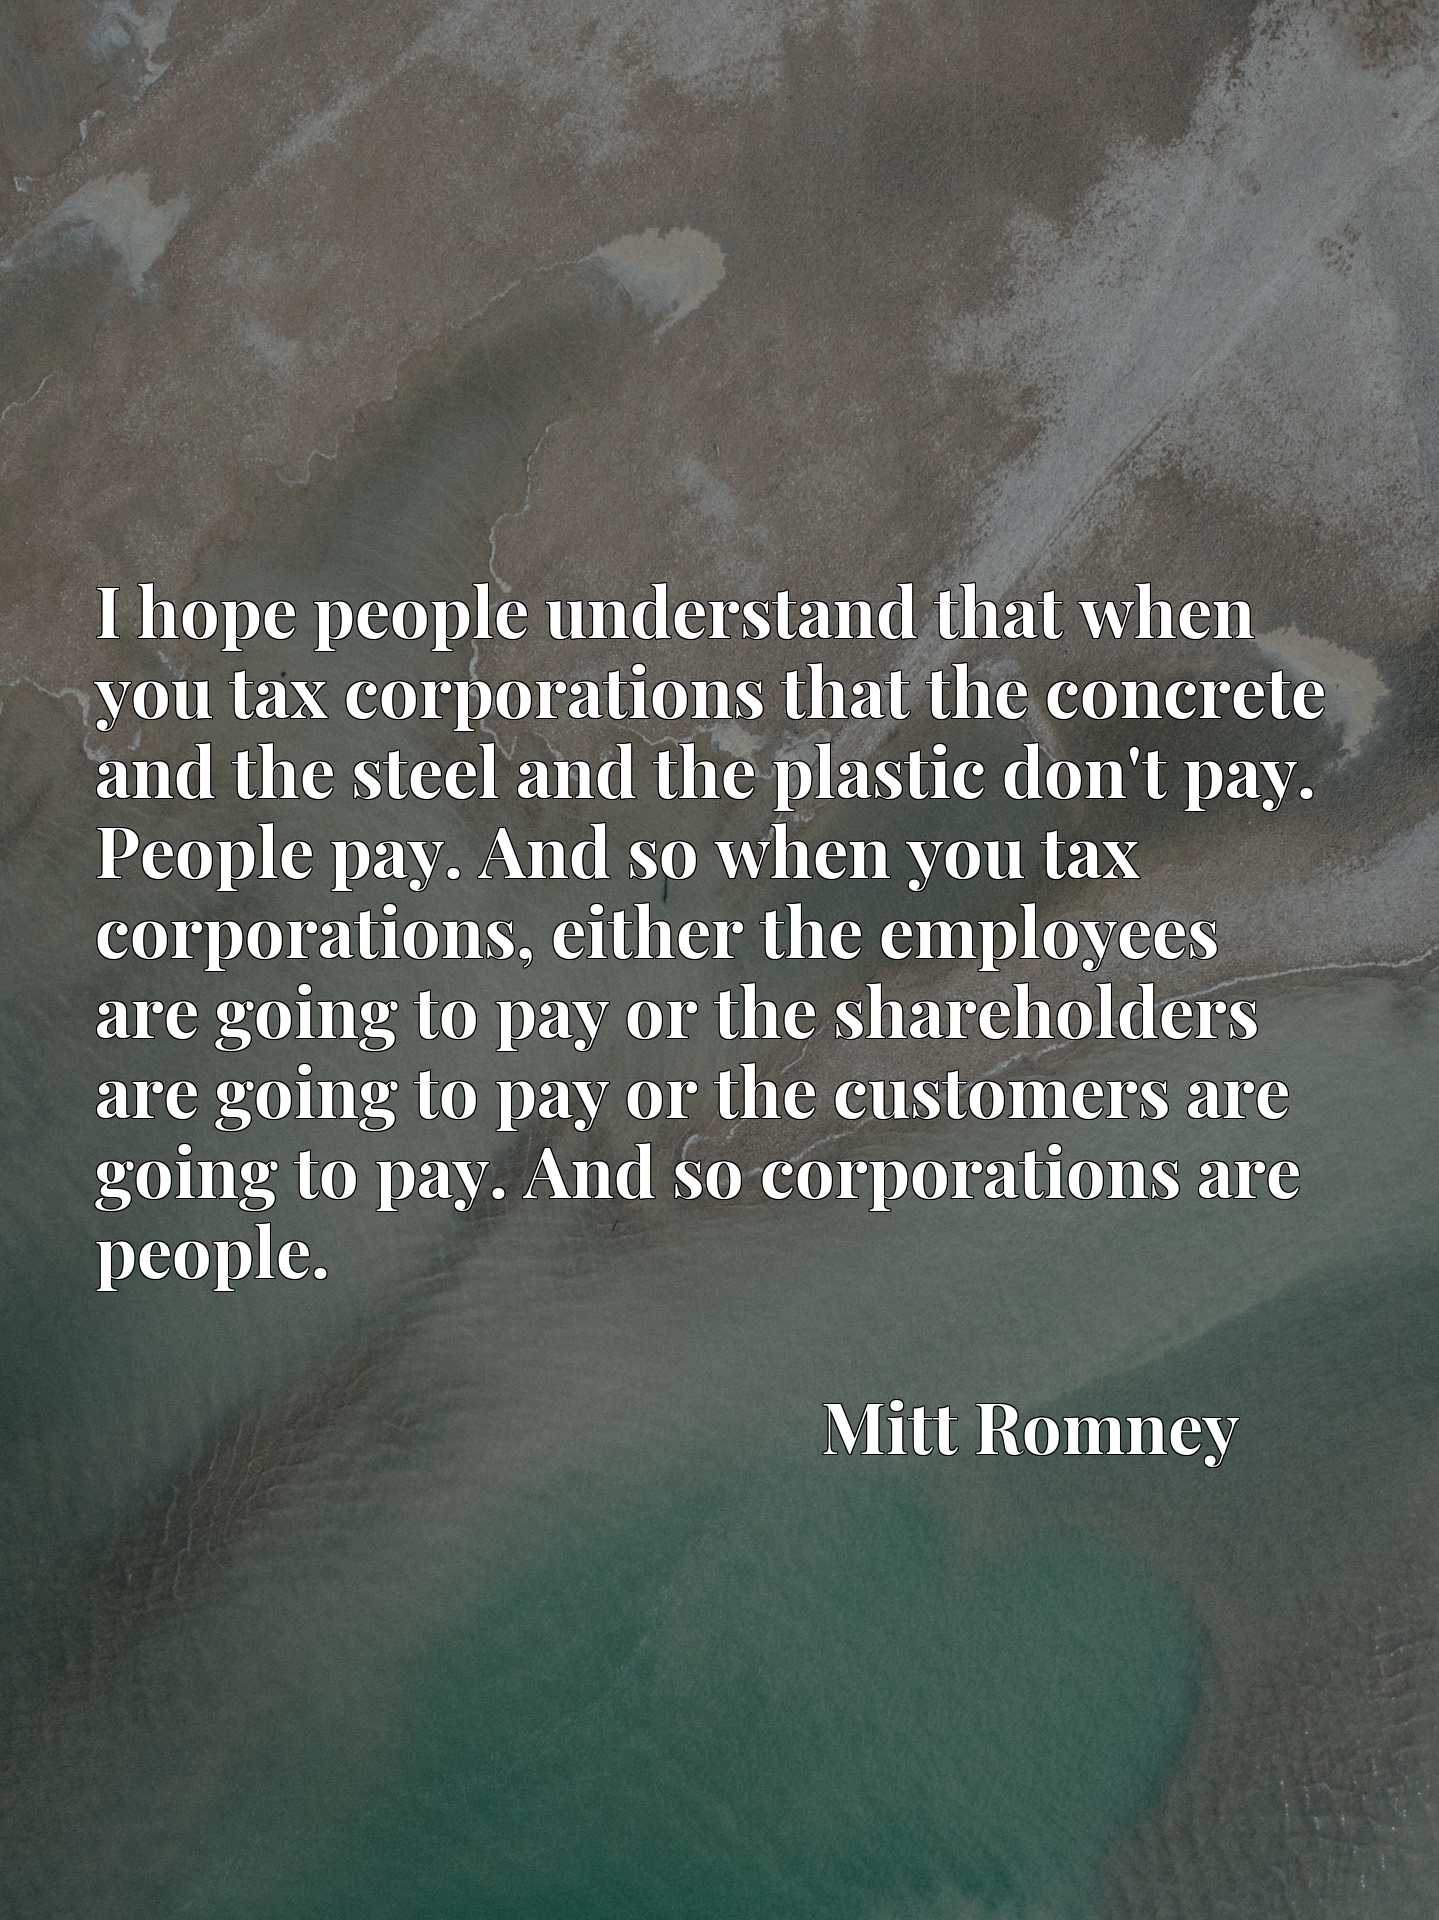 I hope people understand that when you tax corporations that the concrete and the steel and the plastic don't pay. People pay. And so when you tax corporations, either the employees are going to pay or the shareholders are going to pay or the customers are going to pay. And so corporations are people.